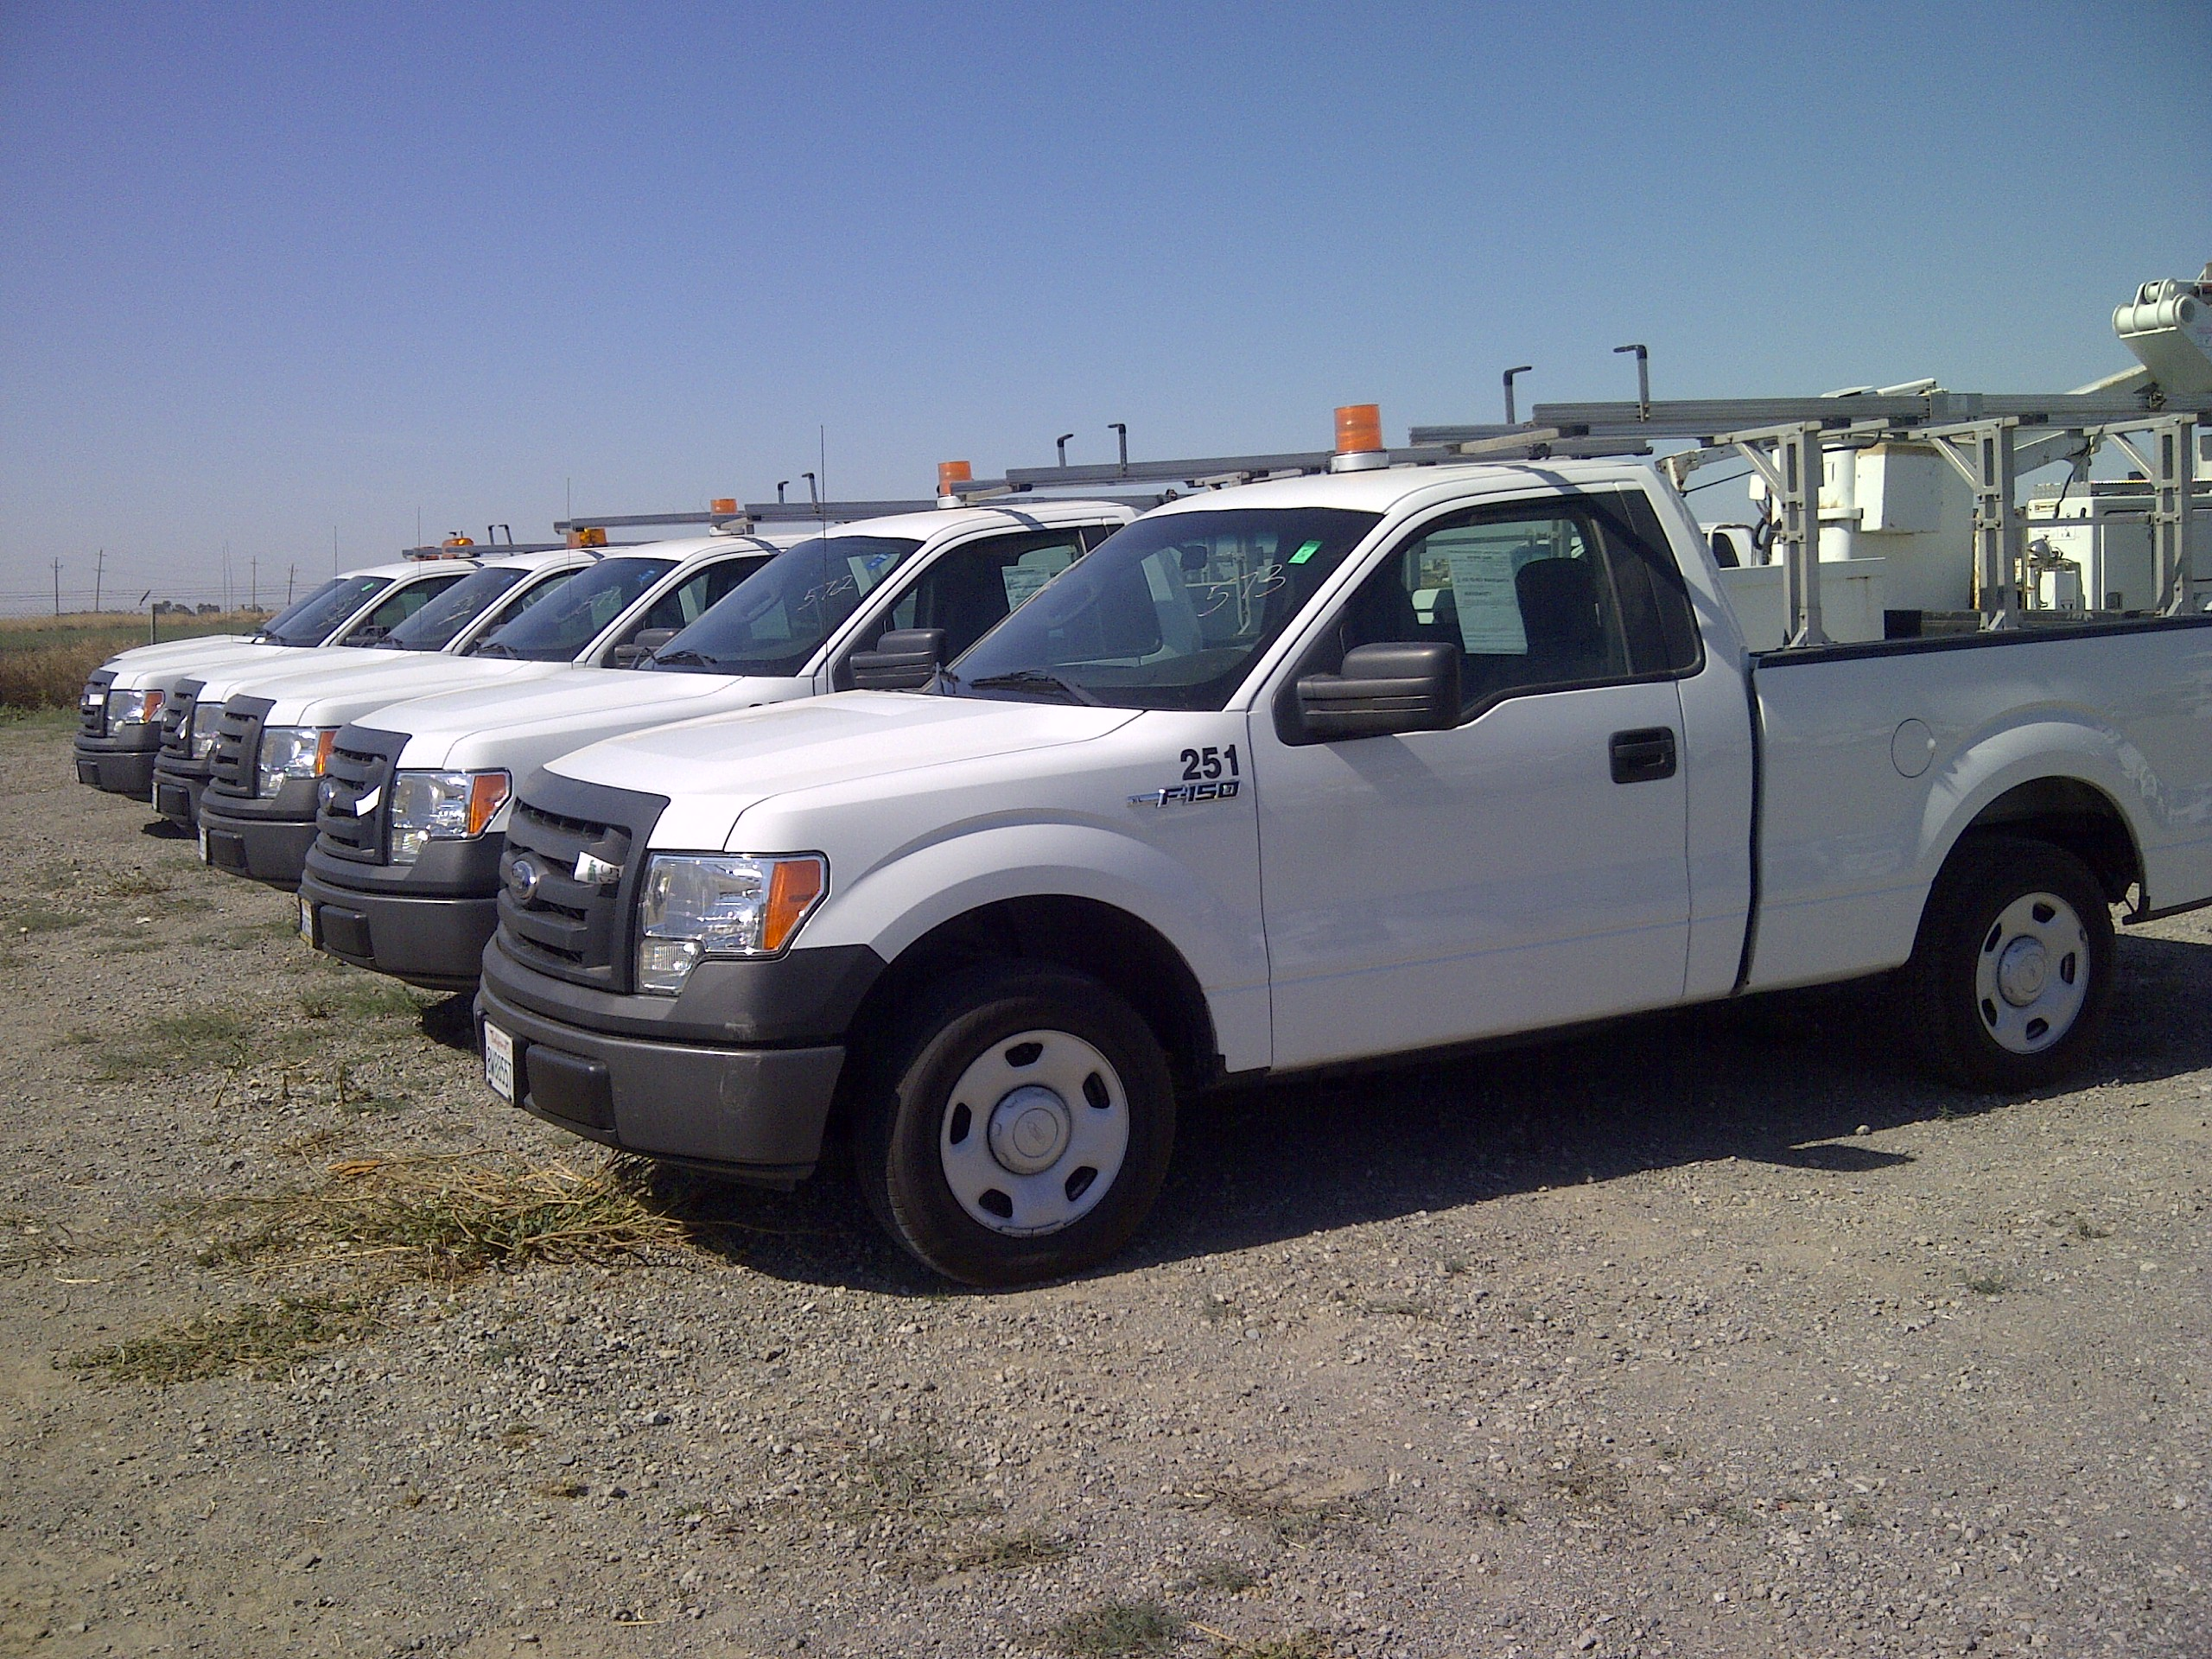 Used Cars Lansing Mi >> J.J. Kane Holds Lansing Michigan's Large Public Car and Truck Auction, July 13th